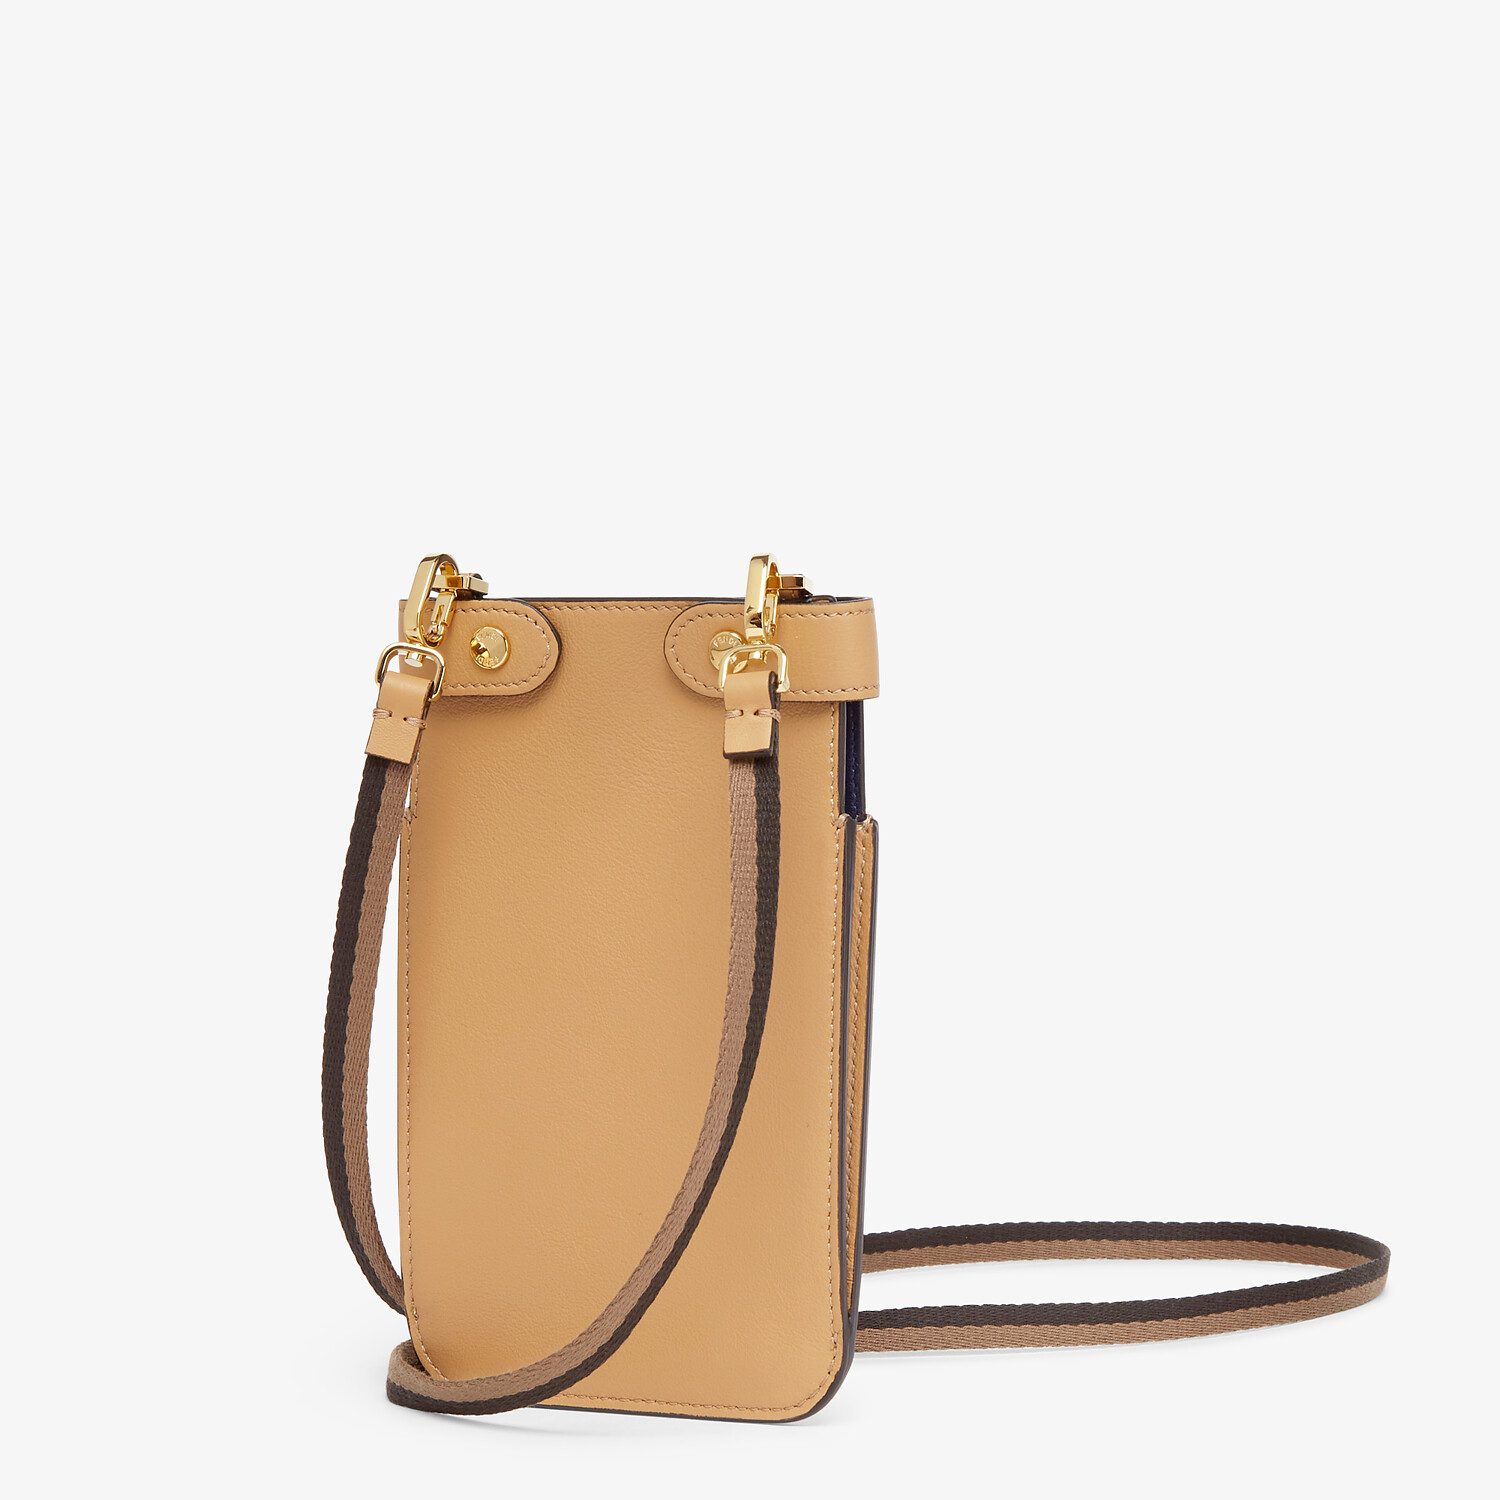 FENDI PEEK-A-PHONE - Beige leather pouch - view 2 detail